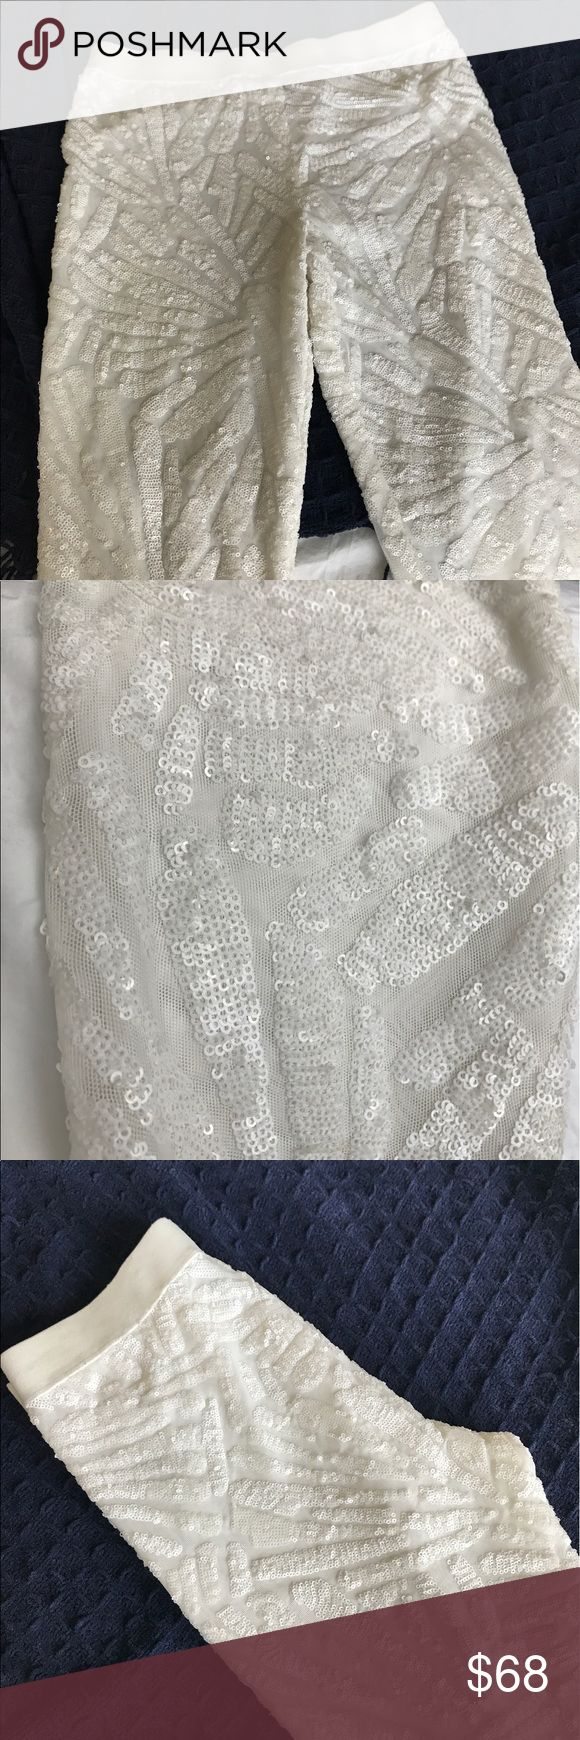 BCBG Sequin Leggings White Used, in Good Condition!! There are no tears or frays at all. All of the sequins are in place. These leggings are perfect for a party or a bride to be!! ❤️ BCBGMaxAzria Pants Leggings